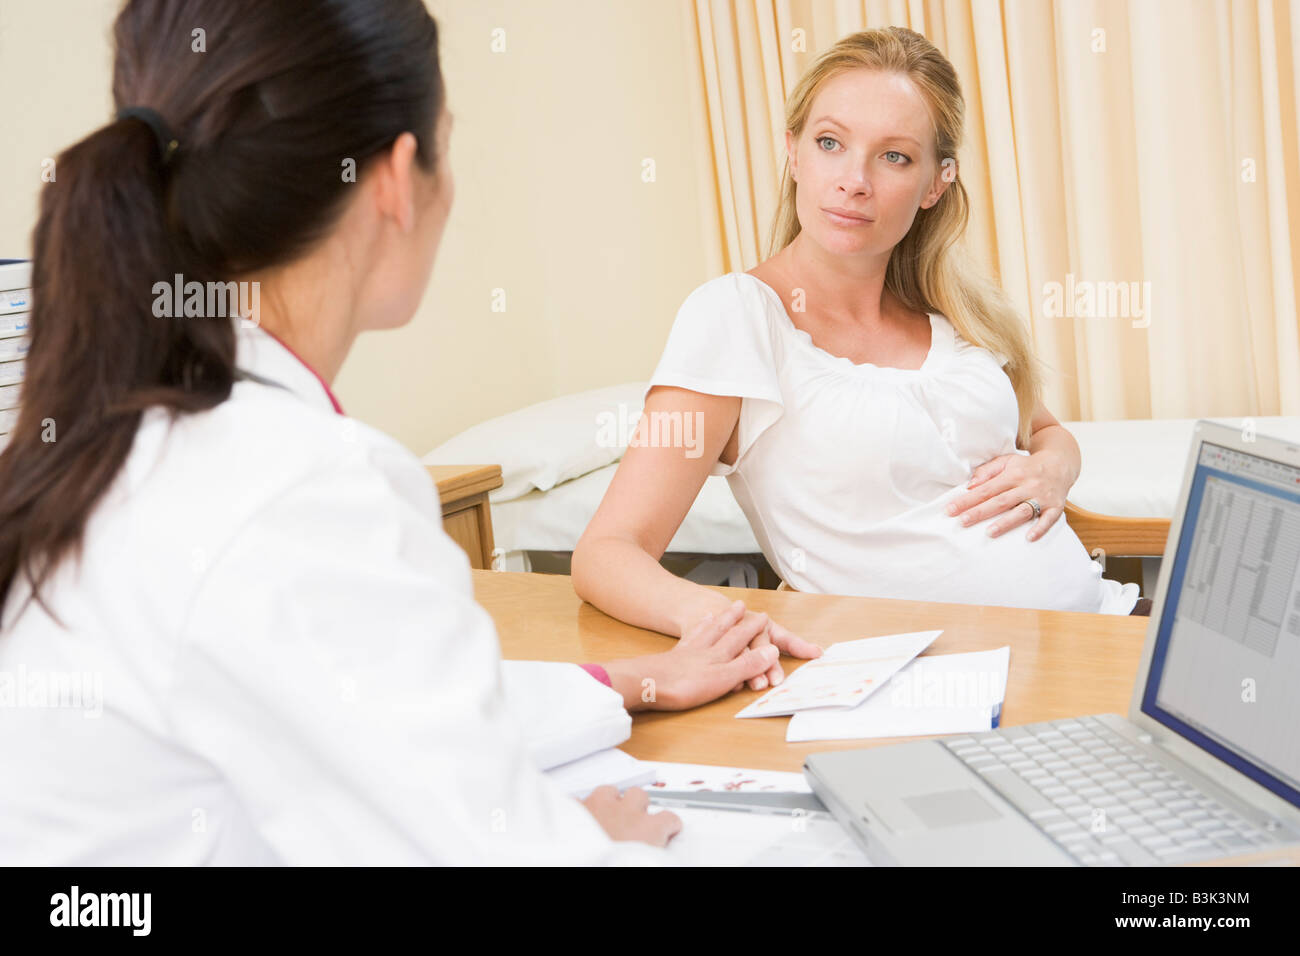 Doctor with laptop and pregnant woman in doctor's office - Stock Image